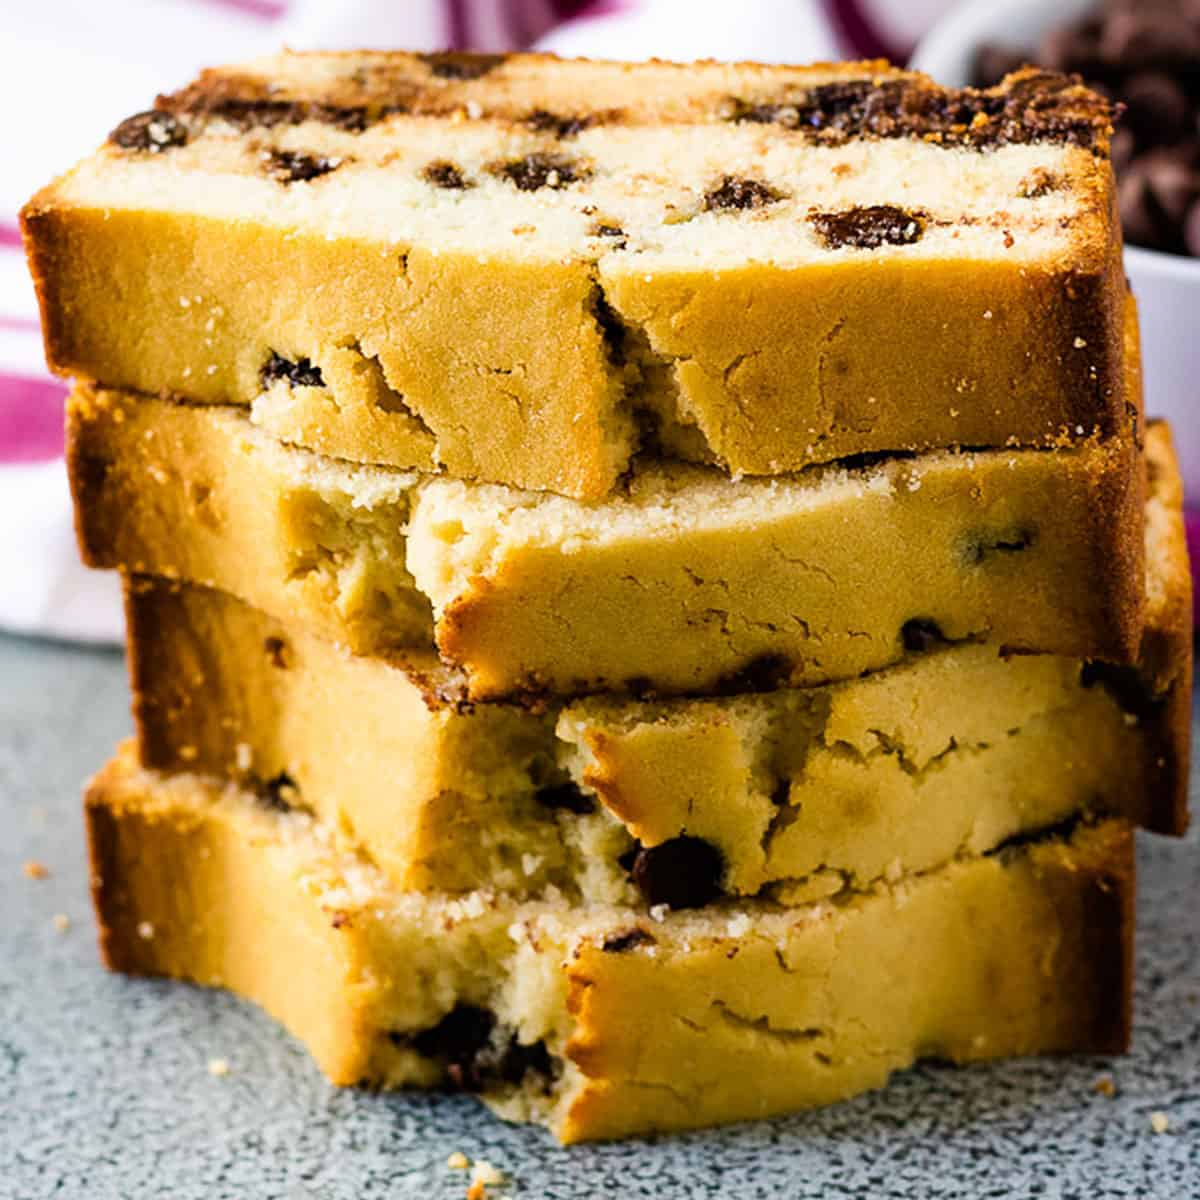 Stack of slices of chocolate chip loaf cake.